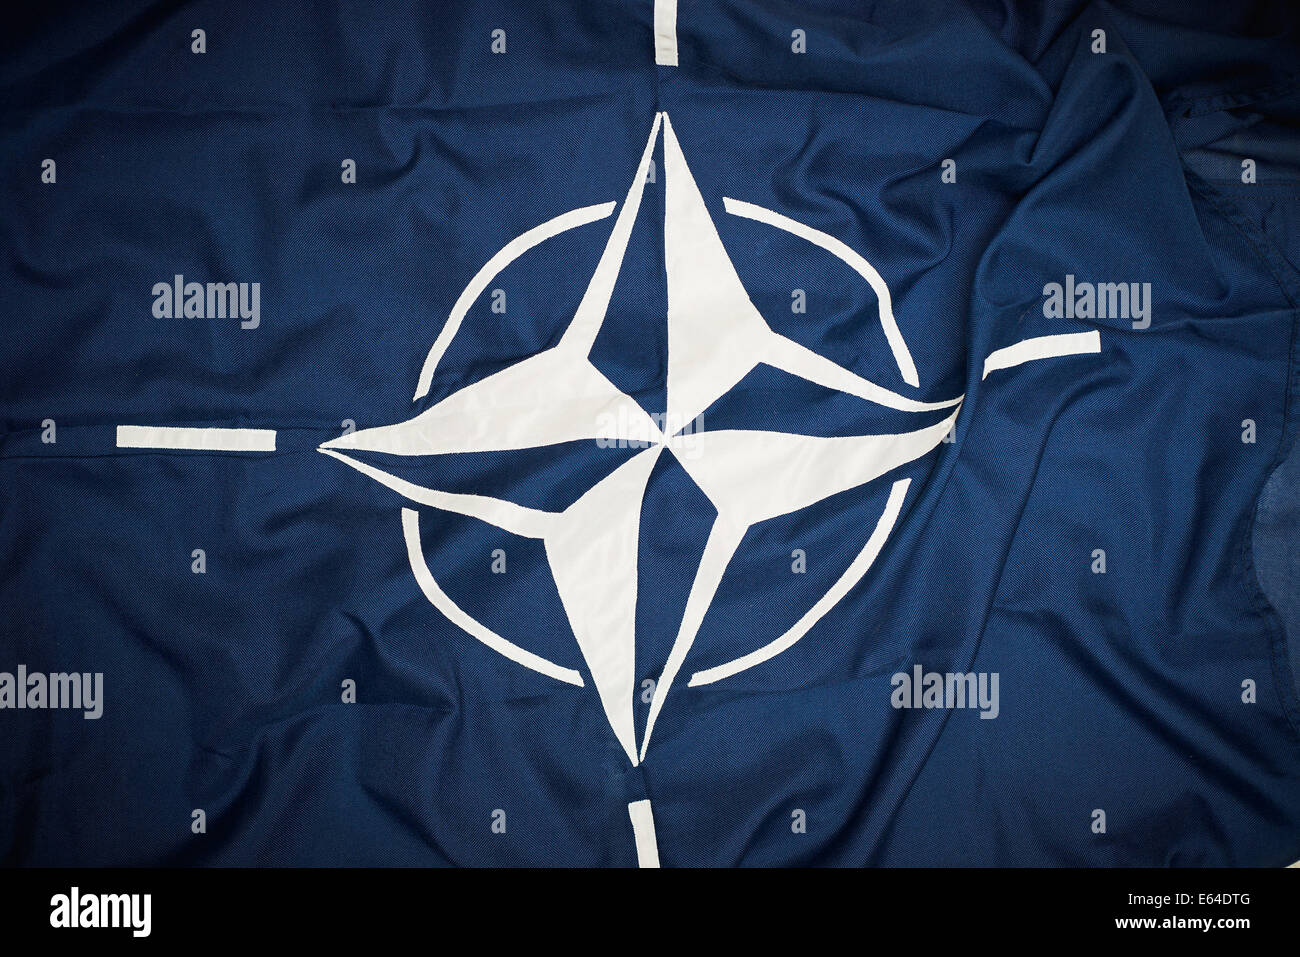 The flag of the North Atlantic Treaty Organization (NATO) consists of a dark blue field charged with a white compass Stock Photo